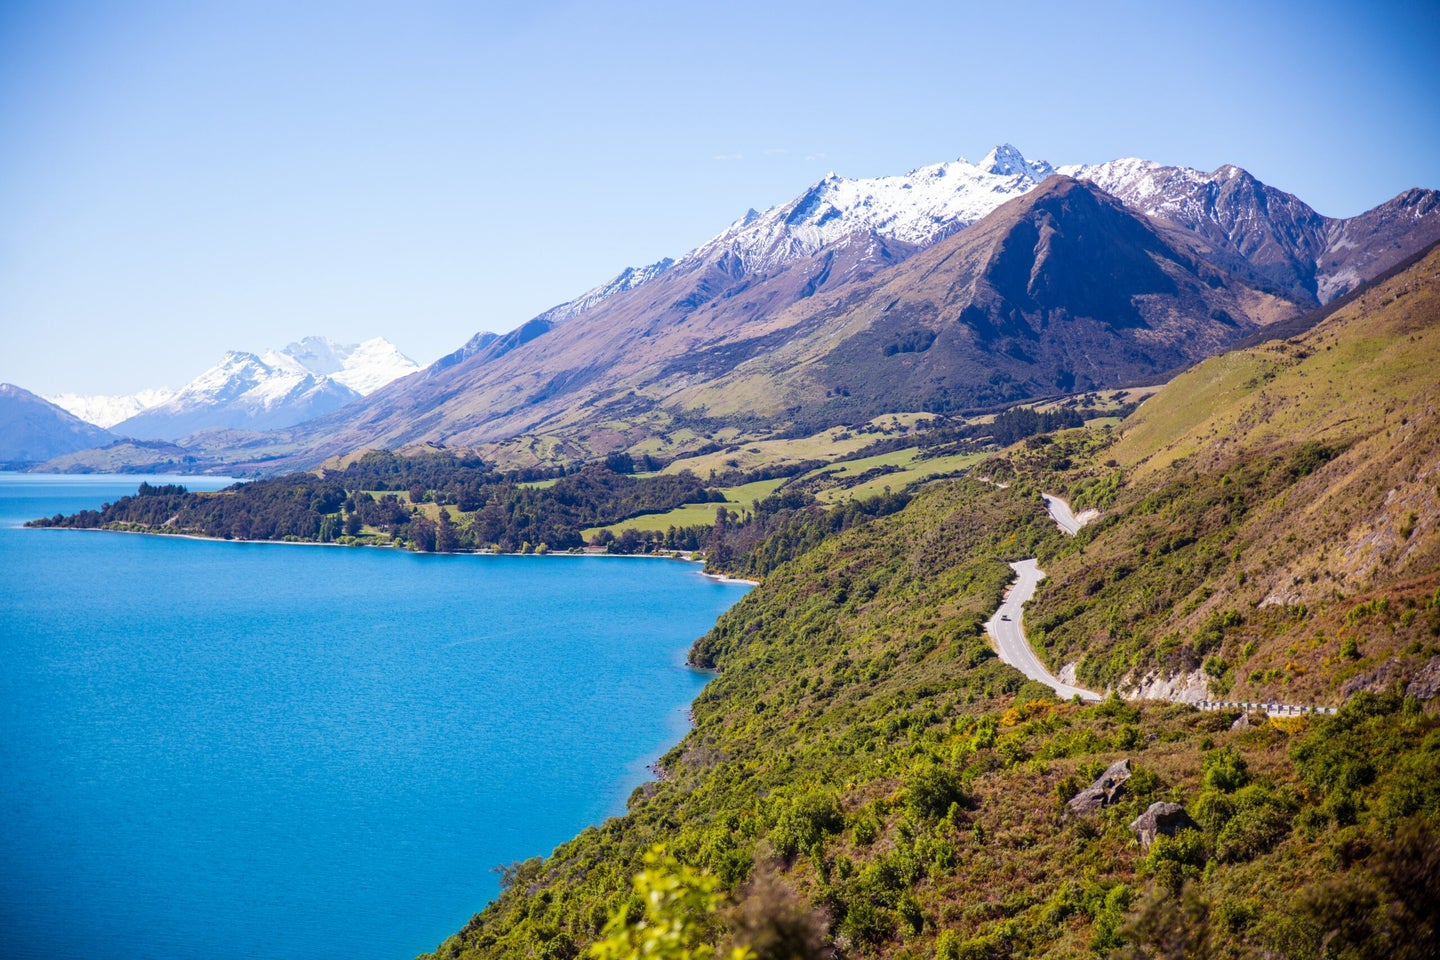 Mountains and body of water in Queenstown, New Zealand